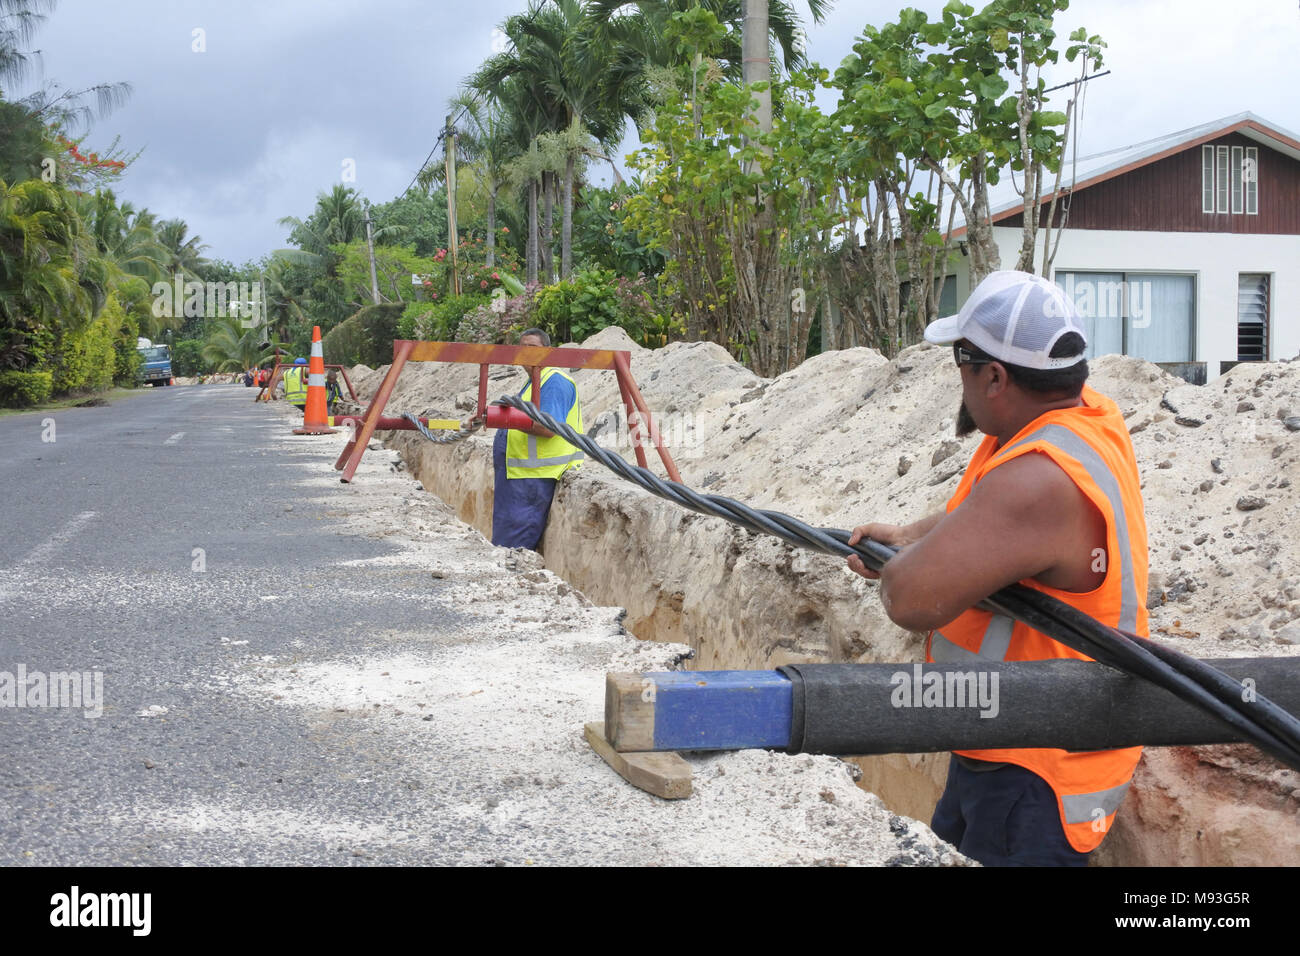 High Voltage Underground Cable Installation : Underground cable work stock photos